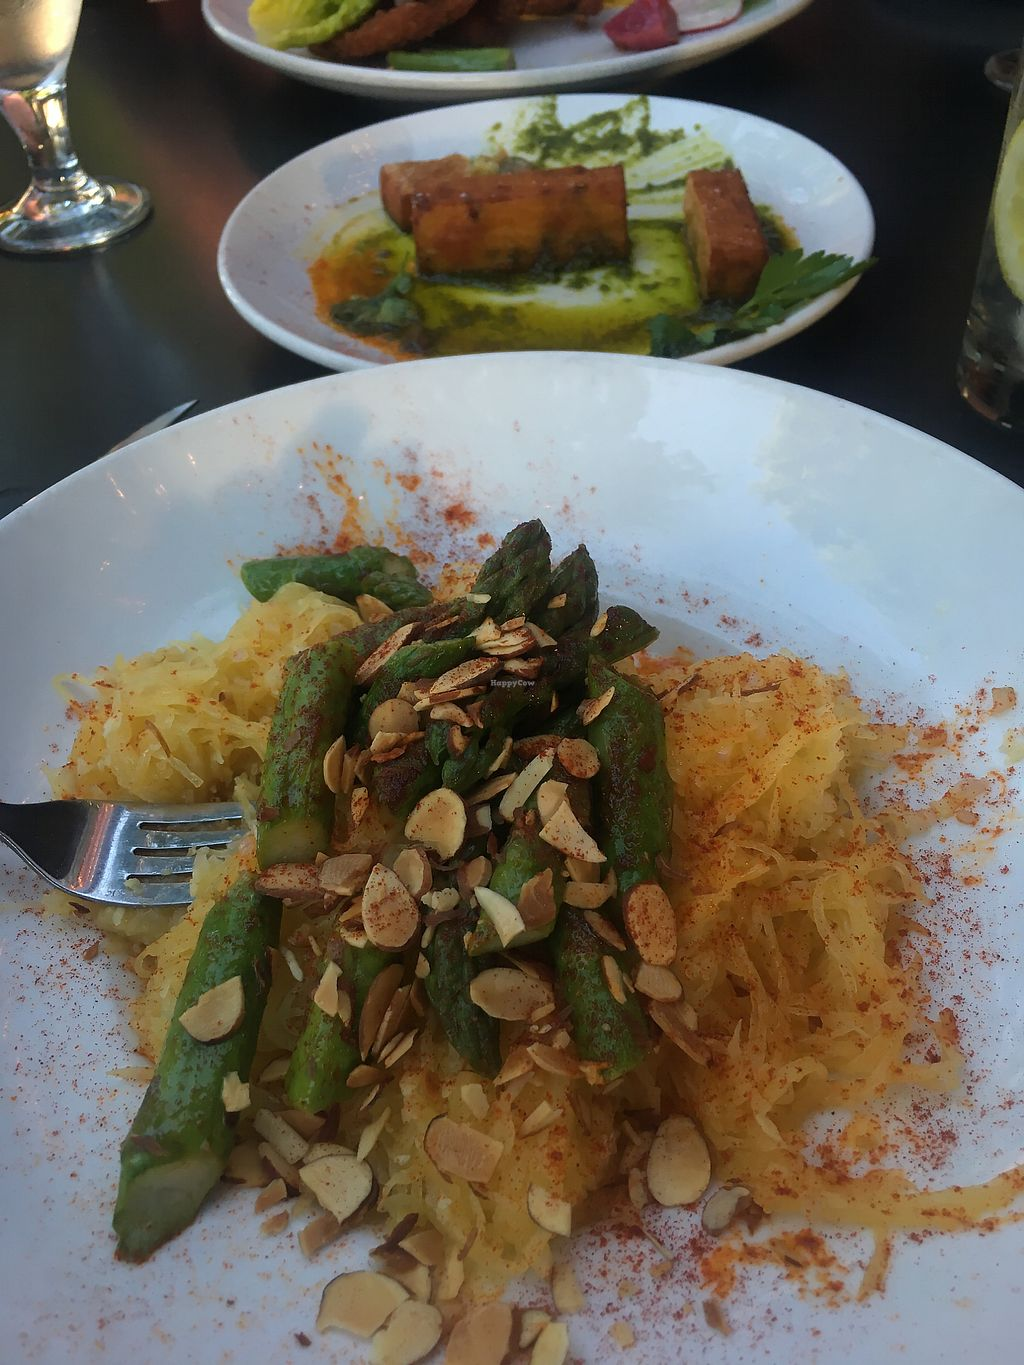 """Photo of Hook and Ladder  by <a href=""""/members/profile/KellyHolt"""">KellyHolt</a> <br/>Spaghetti squash and chickpea fritters <br/> April 21, 2018  - <a href='/contact/abuse/image/109453/388847'>Report</a>"""